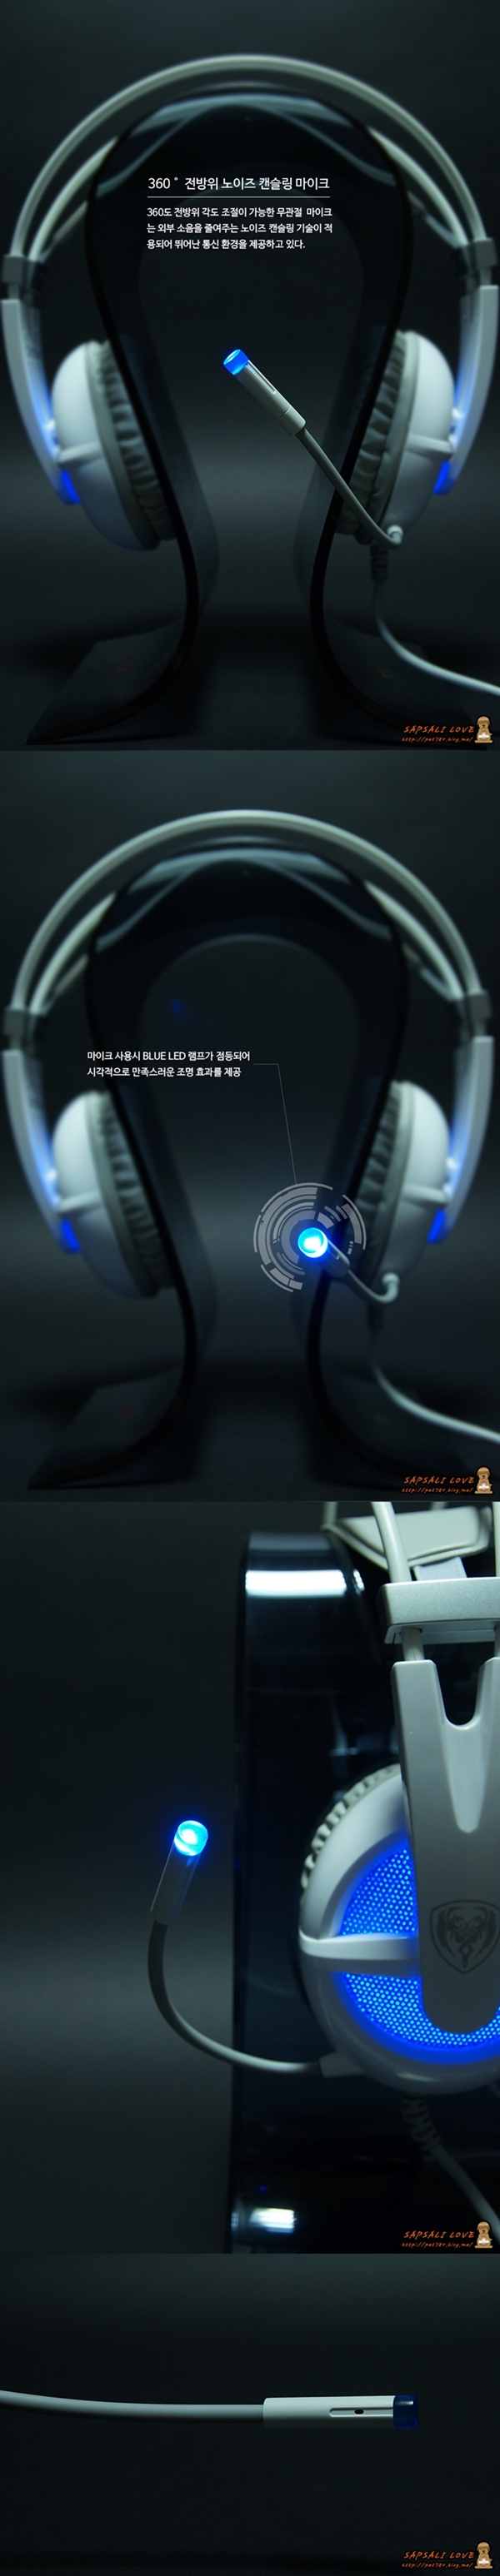 somic G938somic G938외형4 gaming headset gaming headset.jpg